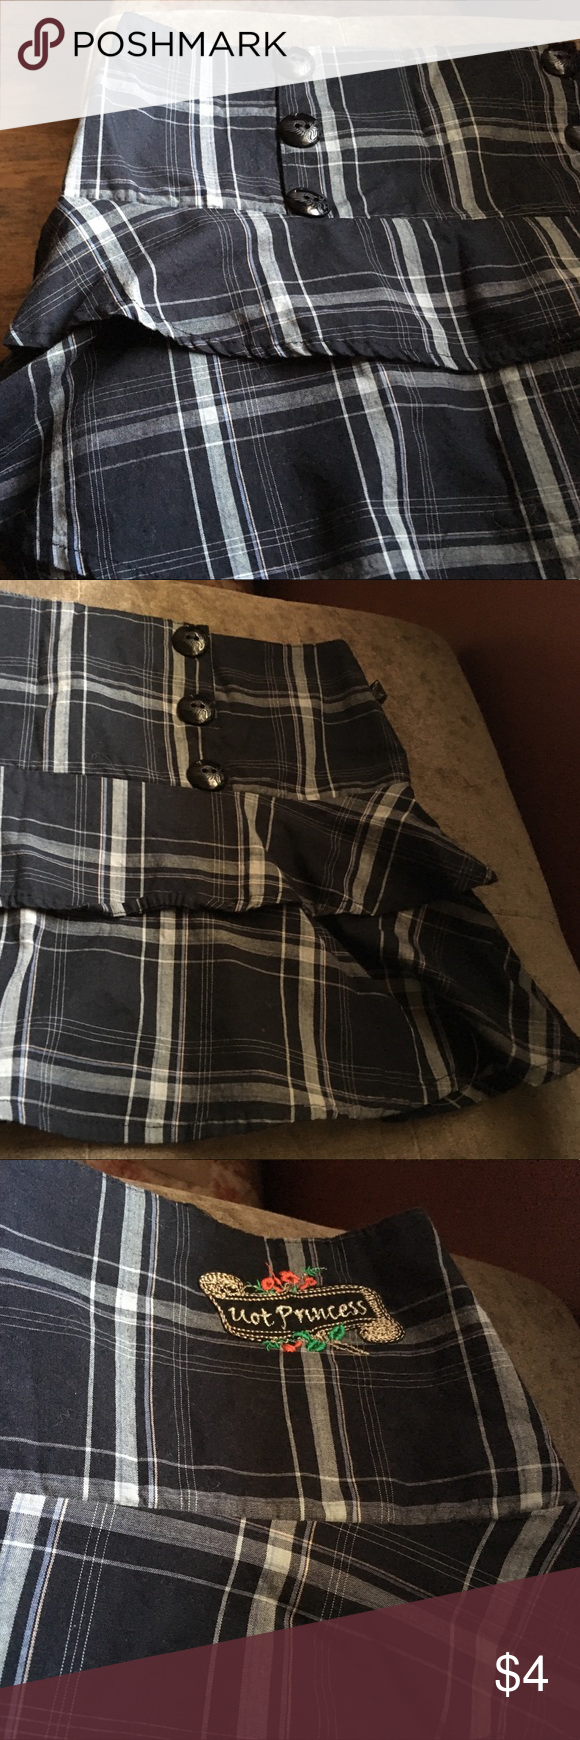 Cute little skirt Plaid skirt with a zipper on one side. Great condition. No imperfections:) not princess Skirts Mini